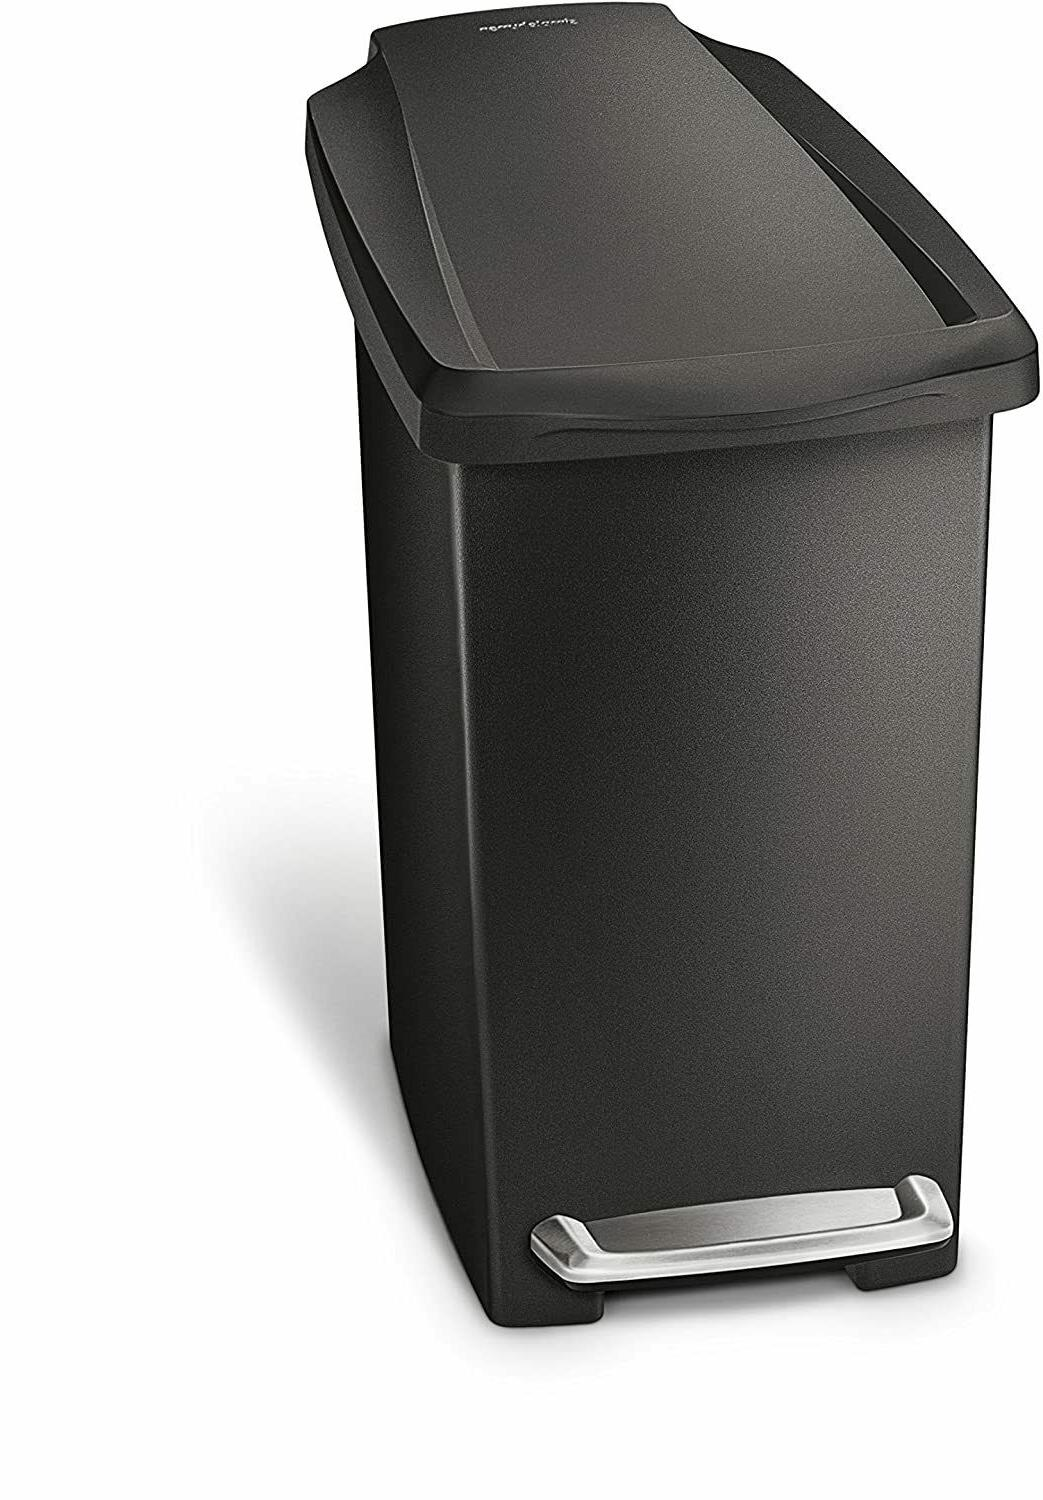 Small Bathroom Trash Can Lid Step-On Black Garbage Waste Off